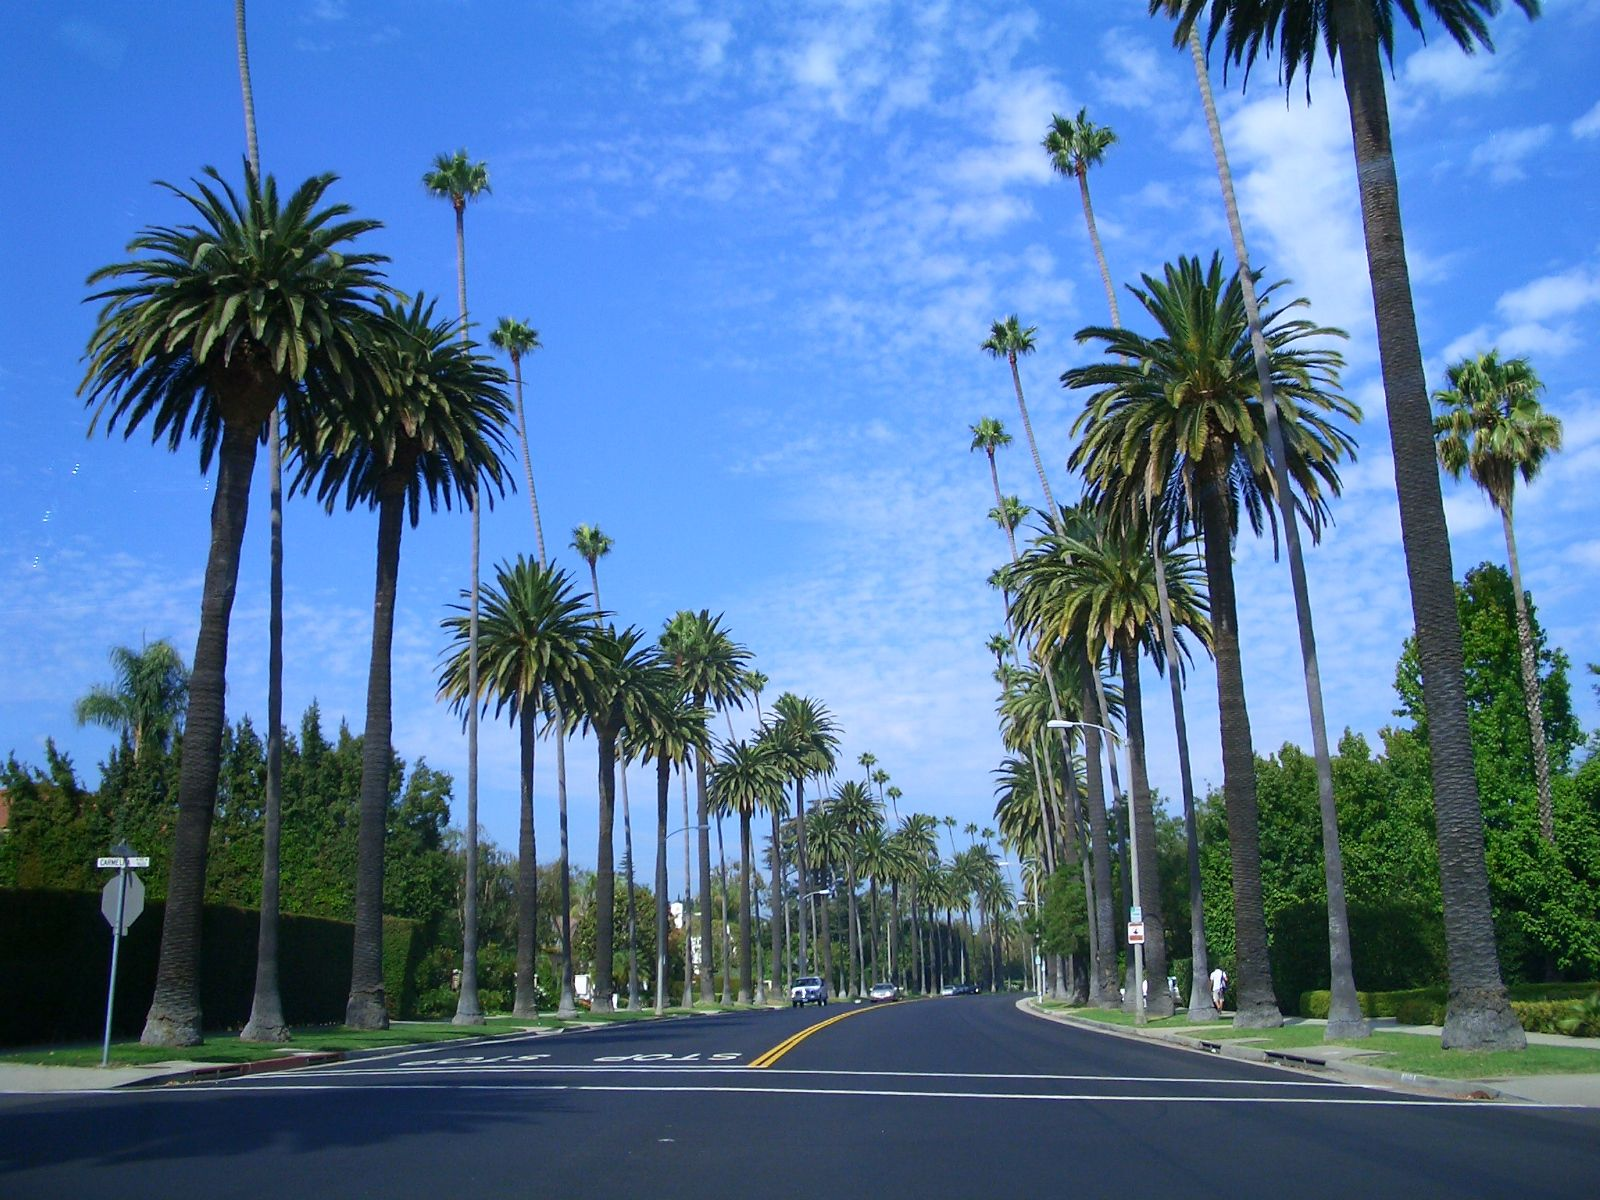 Typical Palm Tree Lined Street In Beverly Hills. Views